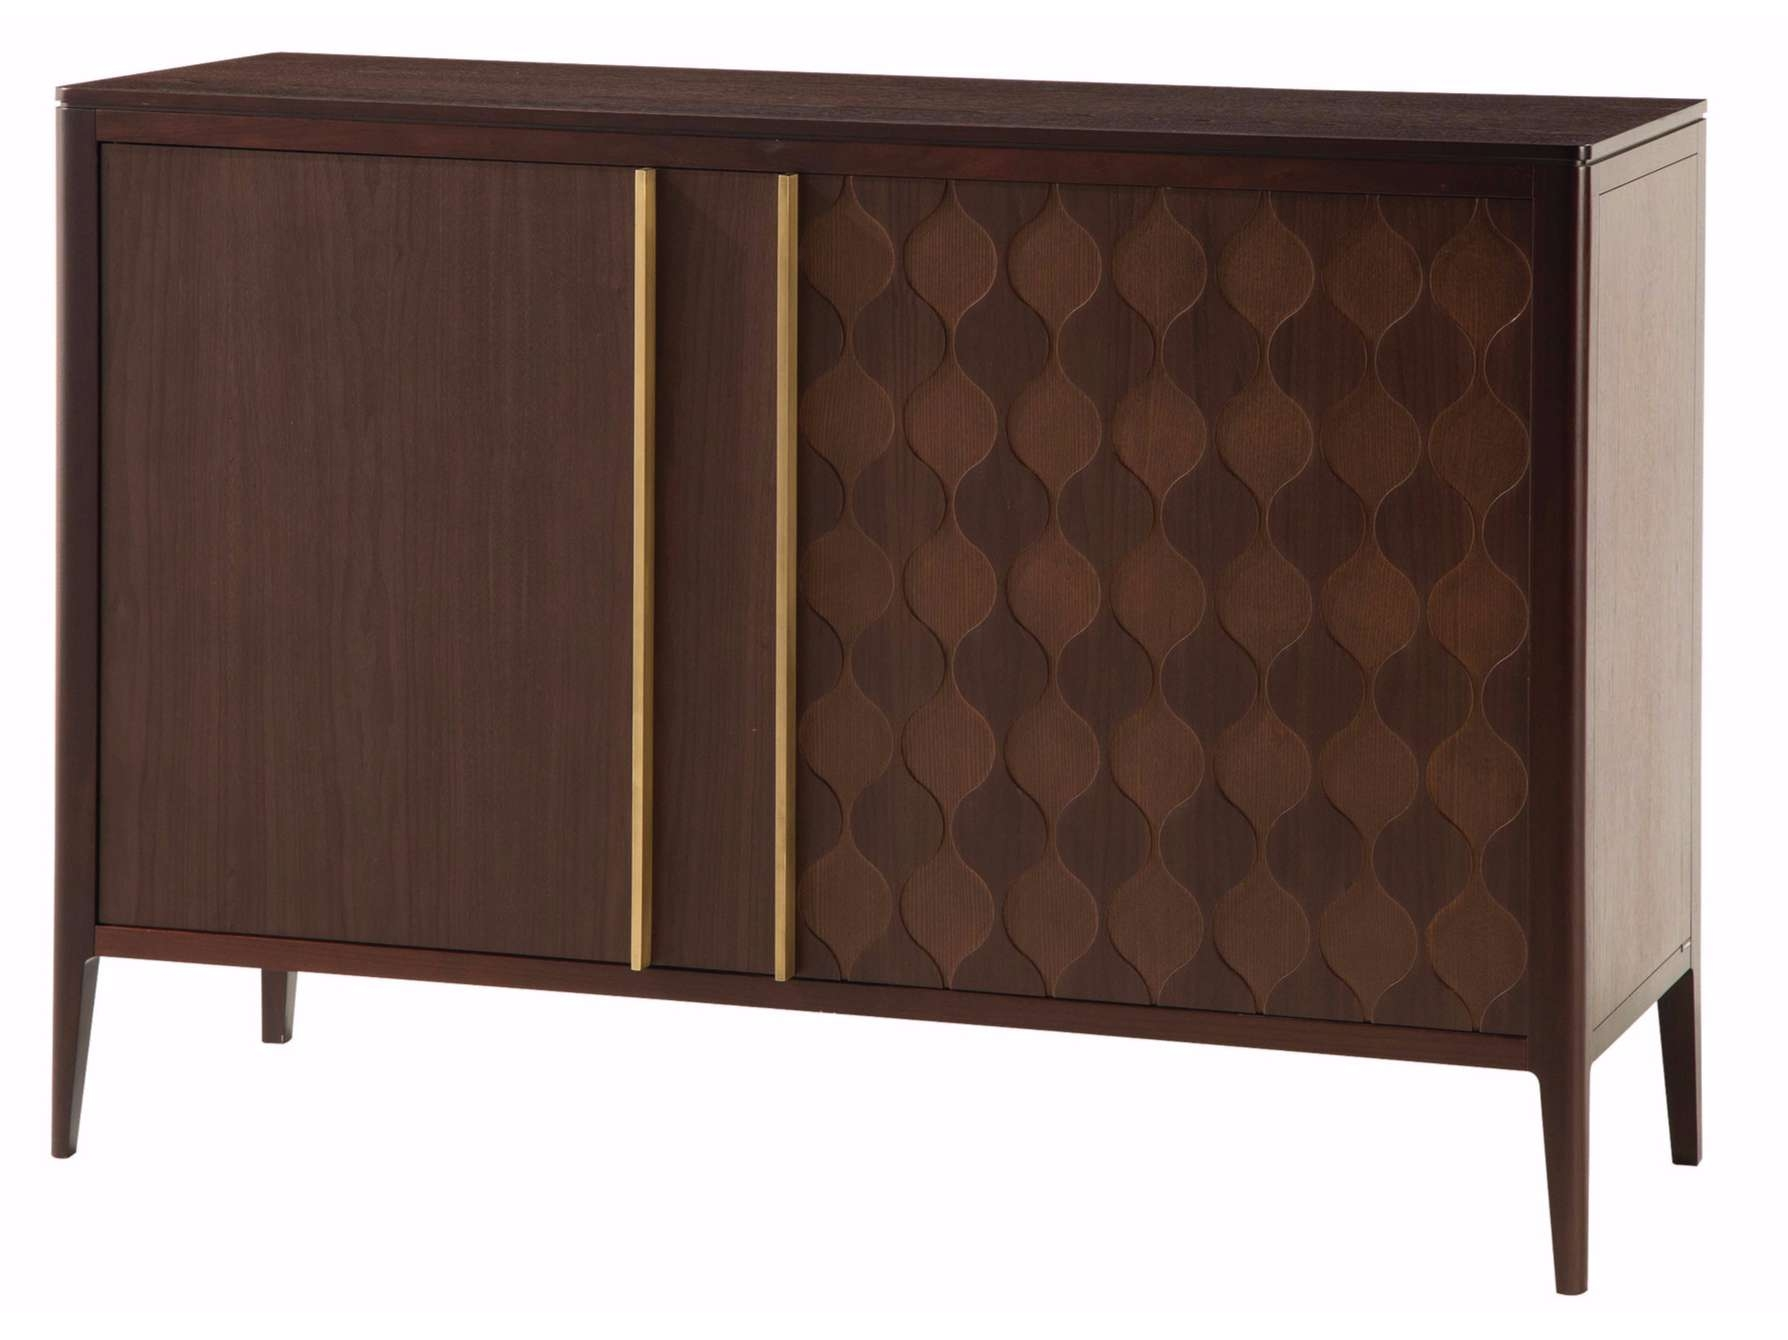 Repertoire   Sideboardroche Bobois With Roche Bobois Sideboards (View 9 of 20)